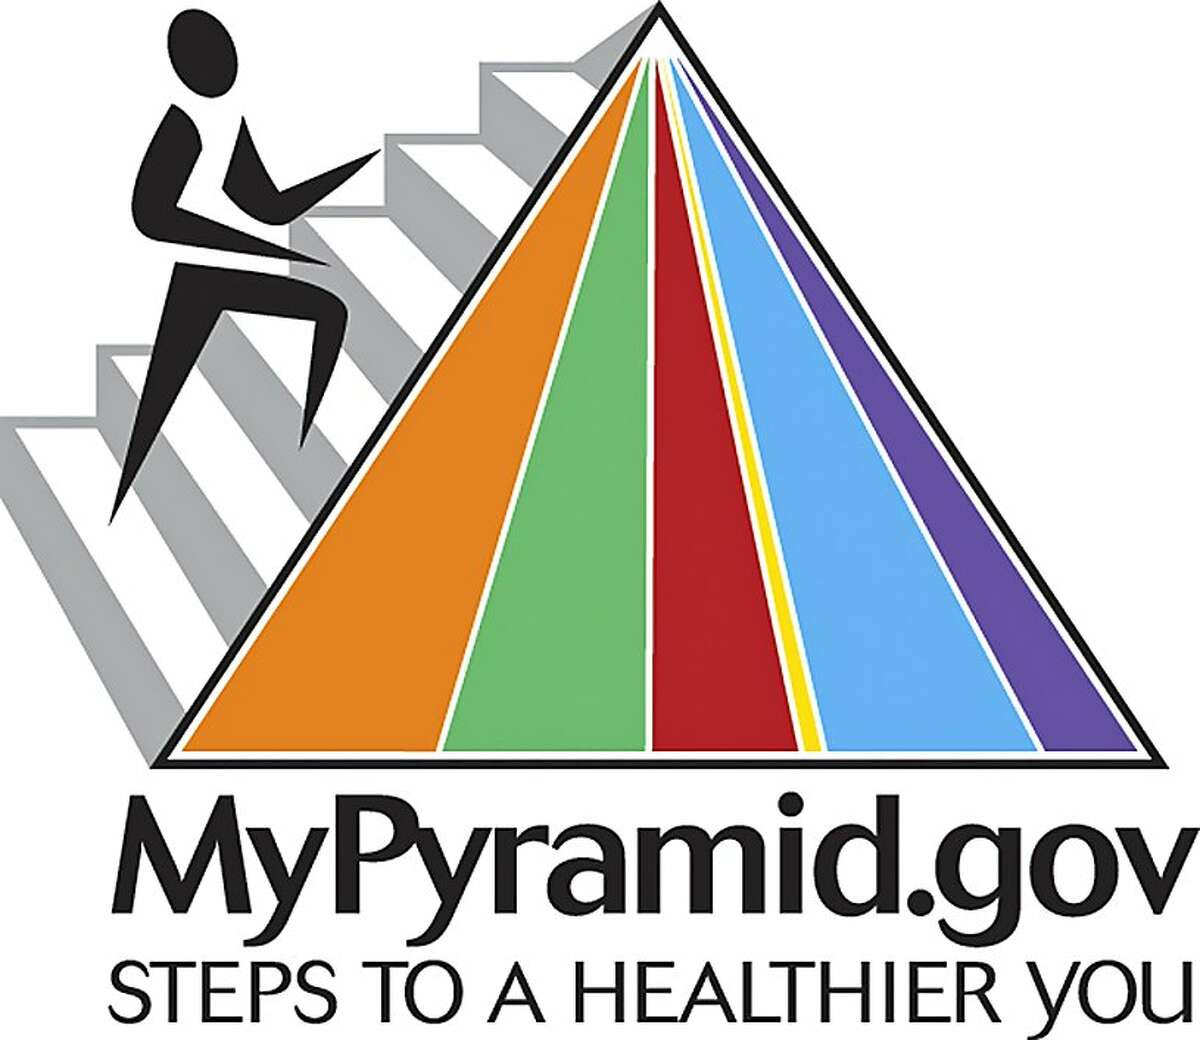 MyPyramid, released by the United States Department of Agriculture on April 19, 2005, in an undated handout image. The Obama administration is about to ditch the food pyramid, and in its place officials are dishing up a, plate-shaped symbol, which is meant to give consumers a fast, simple reminder of the basics of a healthy diet.